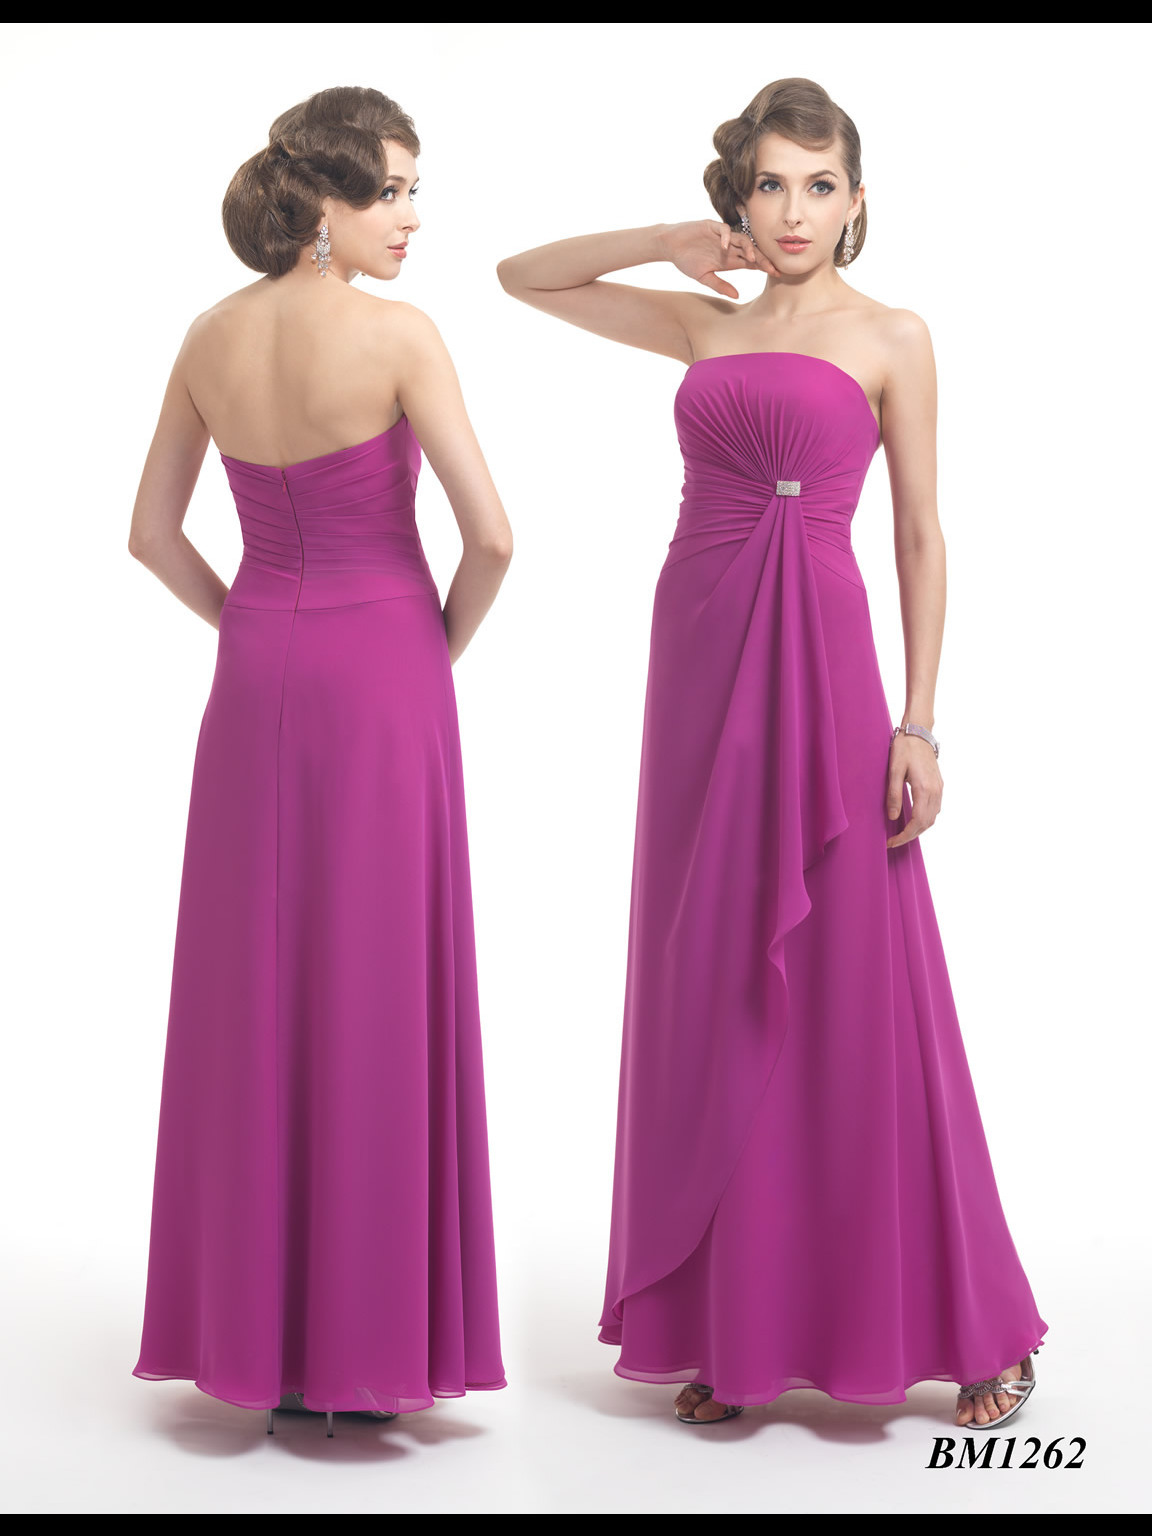 Bridesmaid Dresses and Bridalwear by Tonia Ann